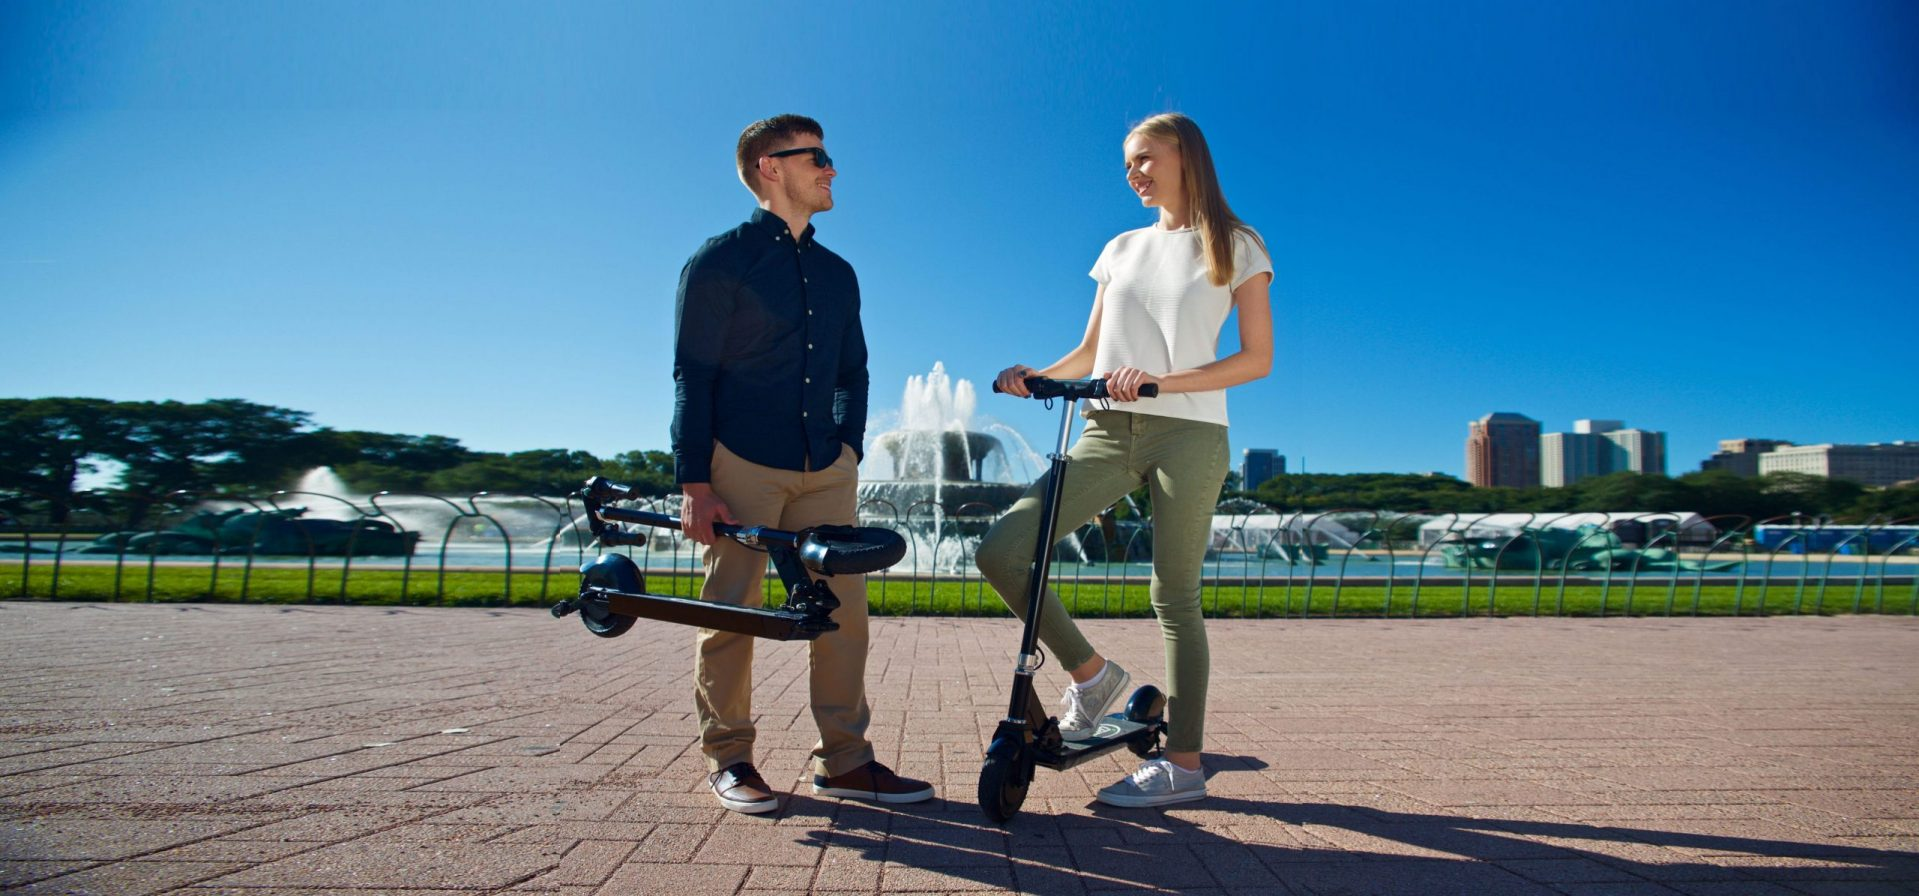 Glion Dolly Electric Scooter Review 2020